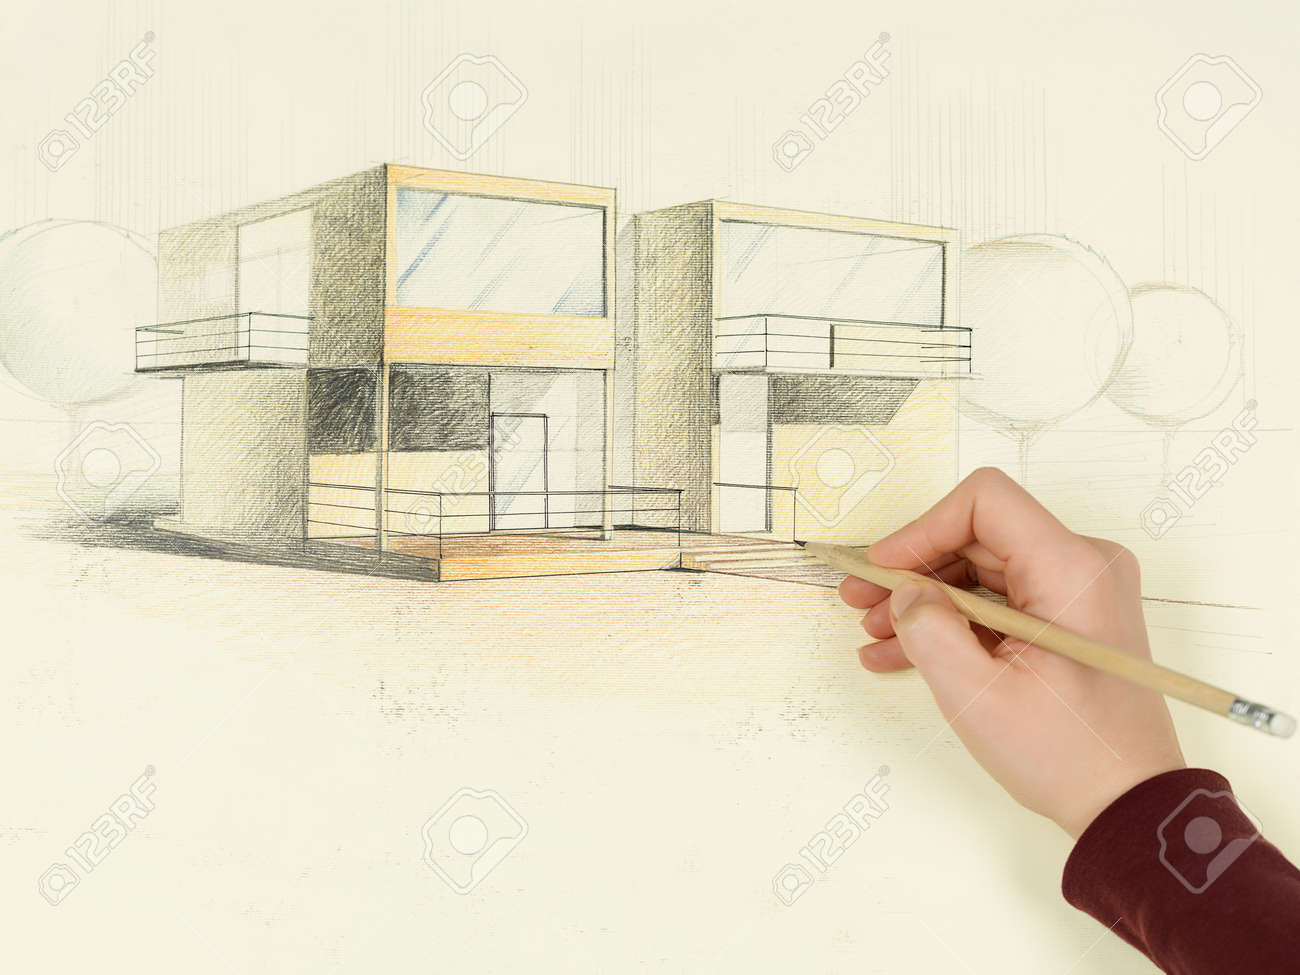 Architectural Drawings Of Modern Houses woman's hand drawing architectural perspective of modern house